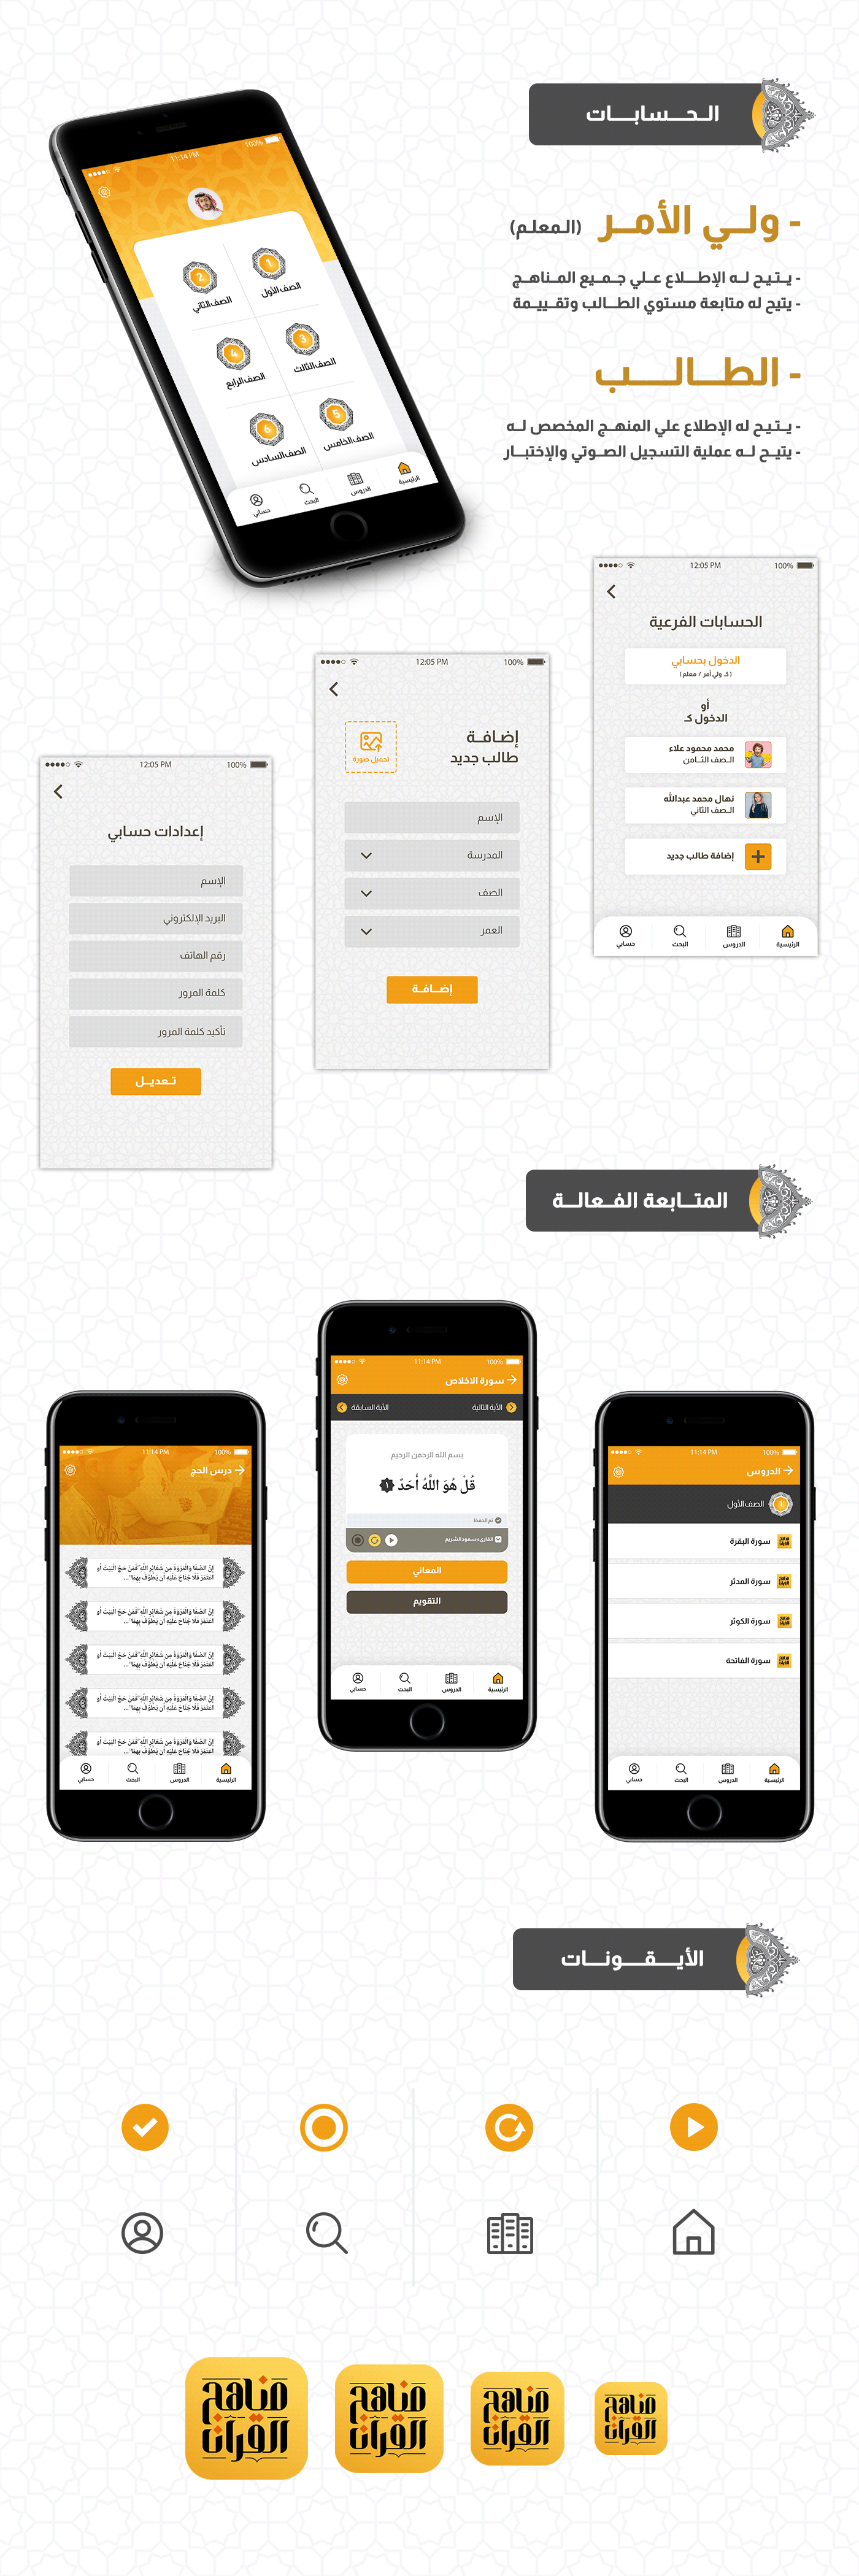 #apps #Branding #graphicDesign #hybrid #mobile   #mobileapp #mobileApplication #quran #UI #UX